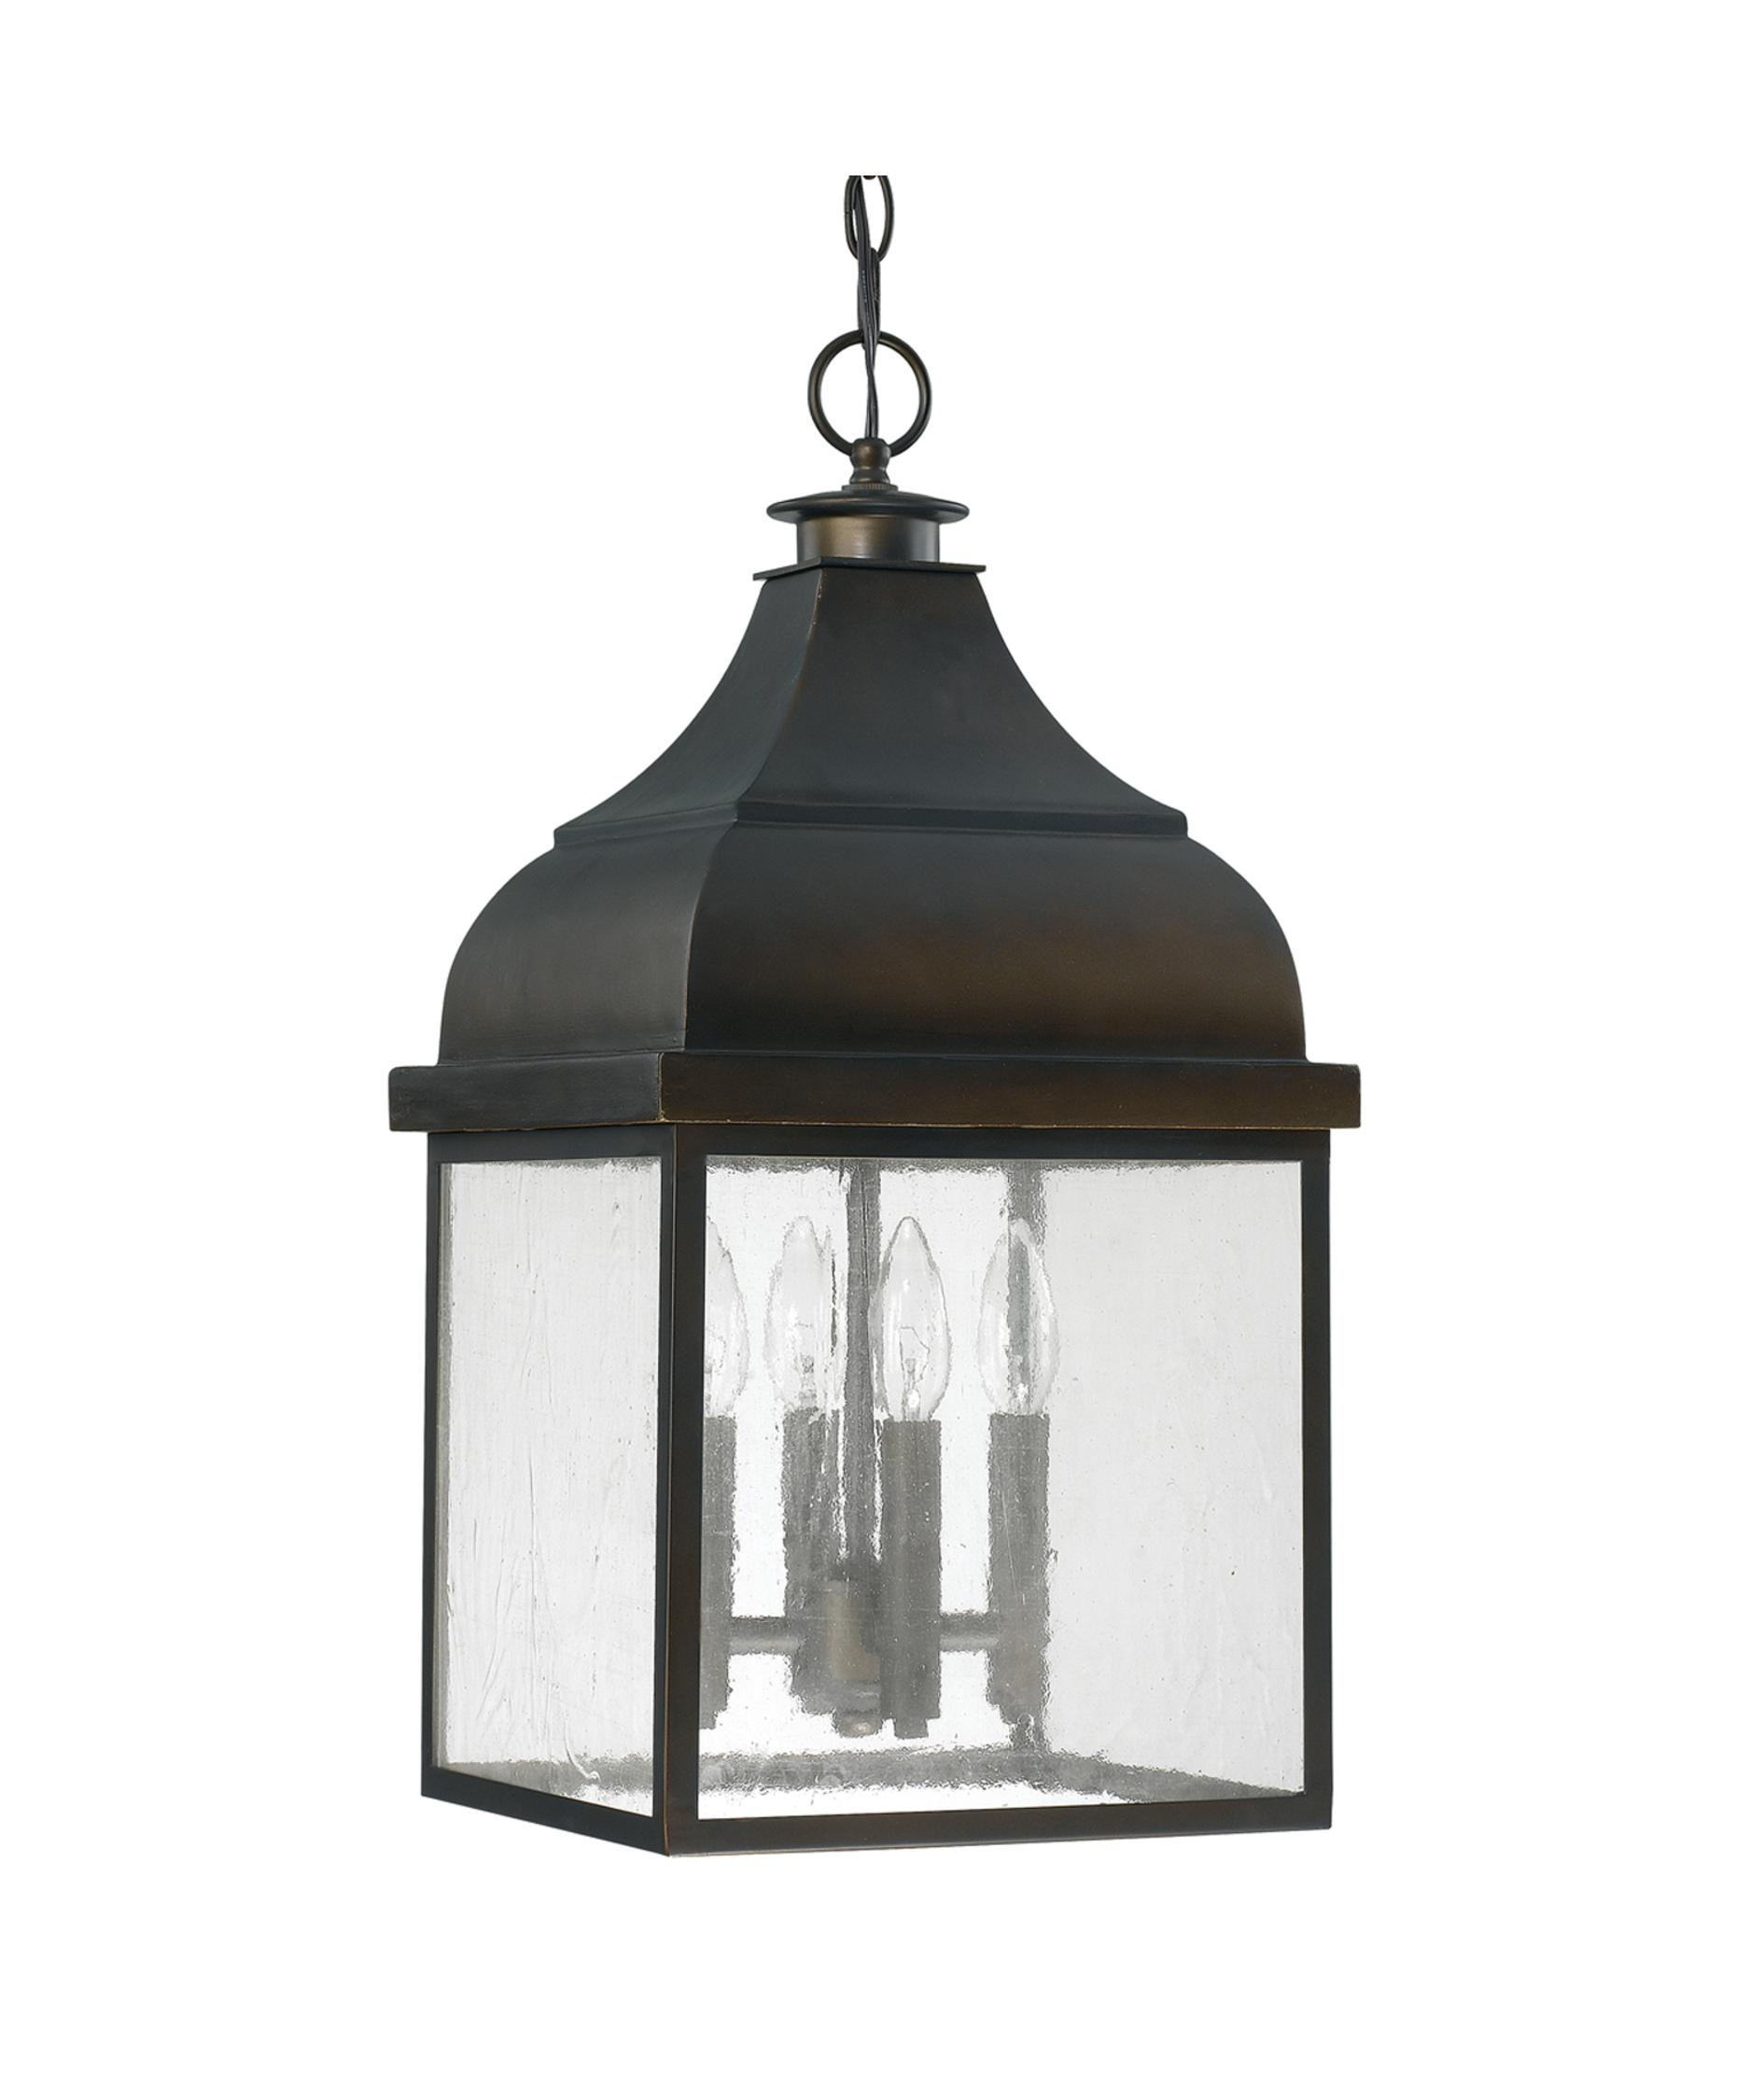 Outdoor Lanterns, Patio Lanterns, Outdoor Hanging Lanterns Within Outdoor Hanging Coach Lanterns (View 15 of 15)